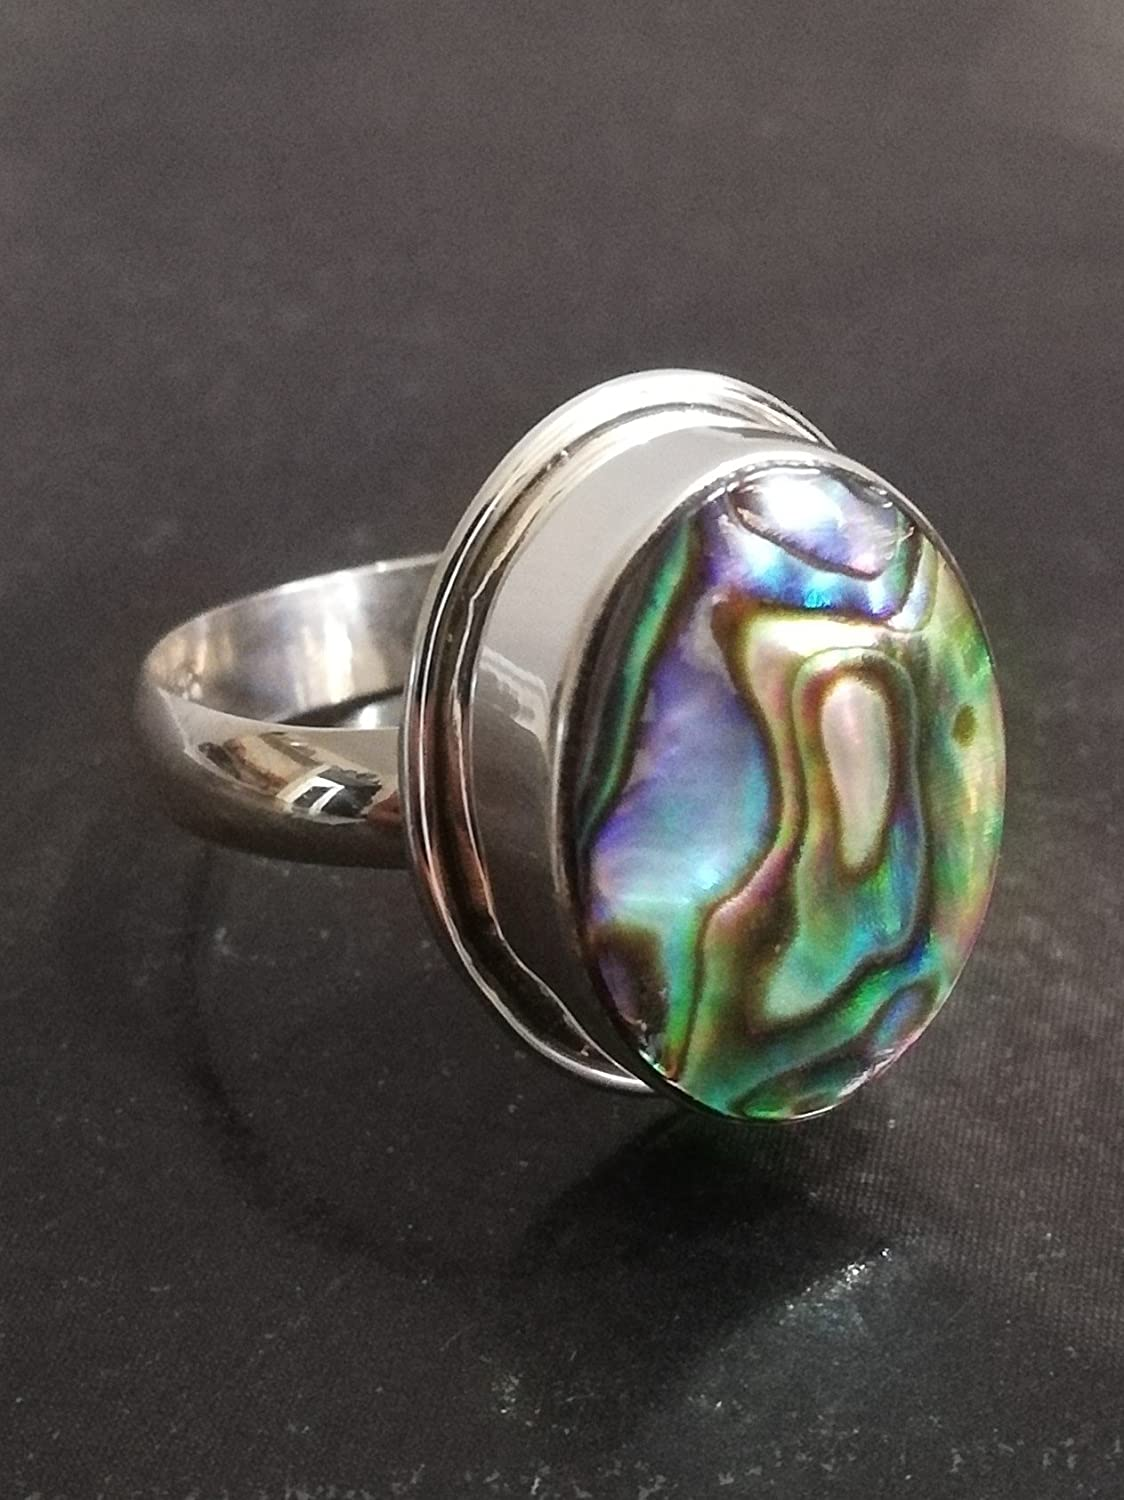 Vtg 925 Sterling Silver Abalone Shell Ring Size 6.5 Pearl Rings